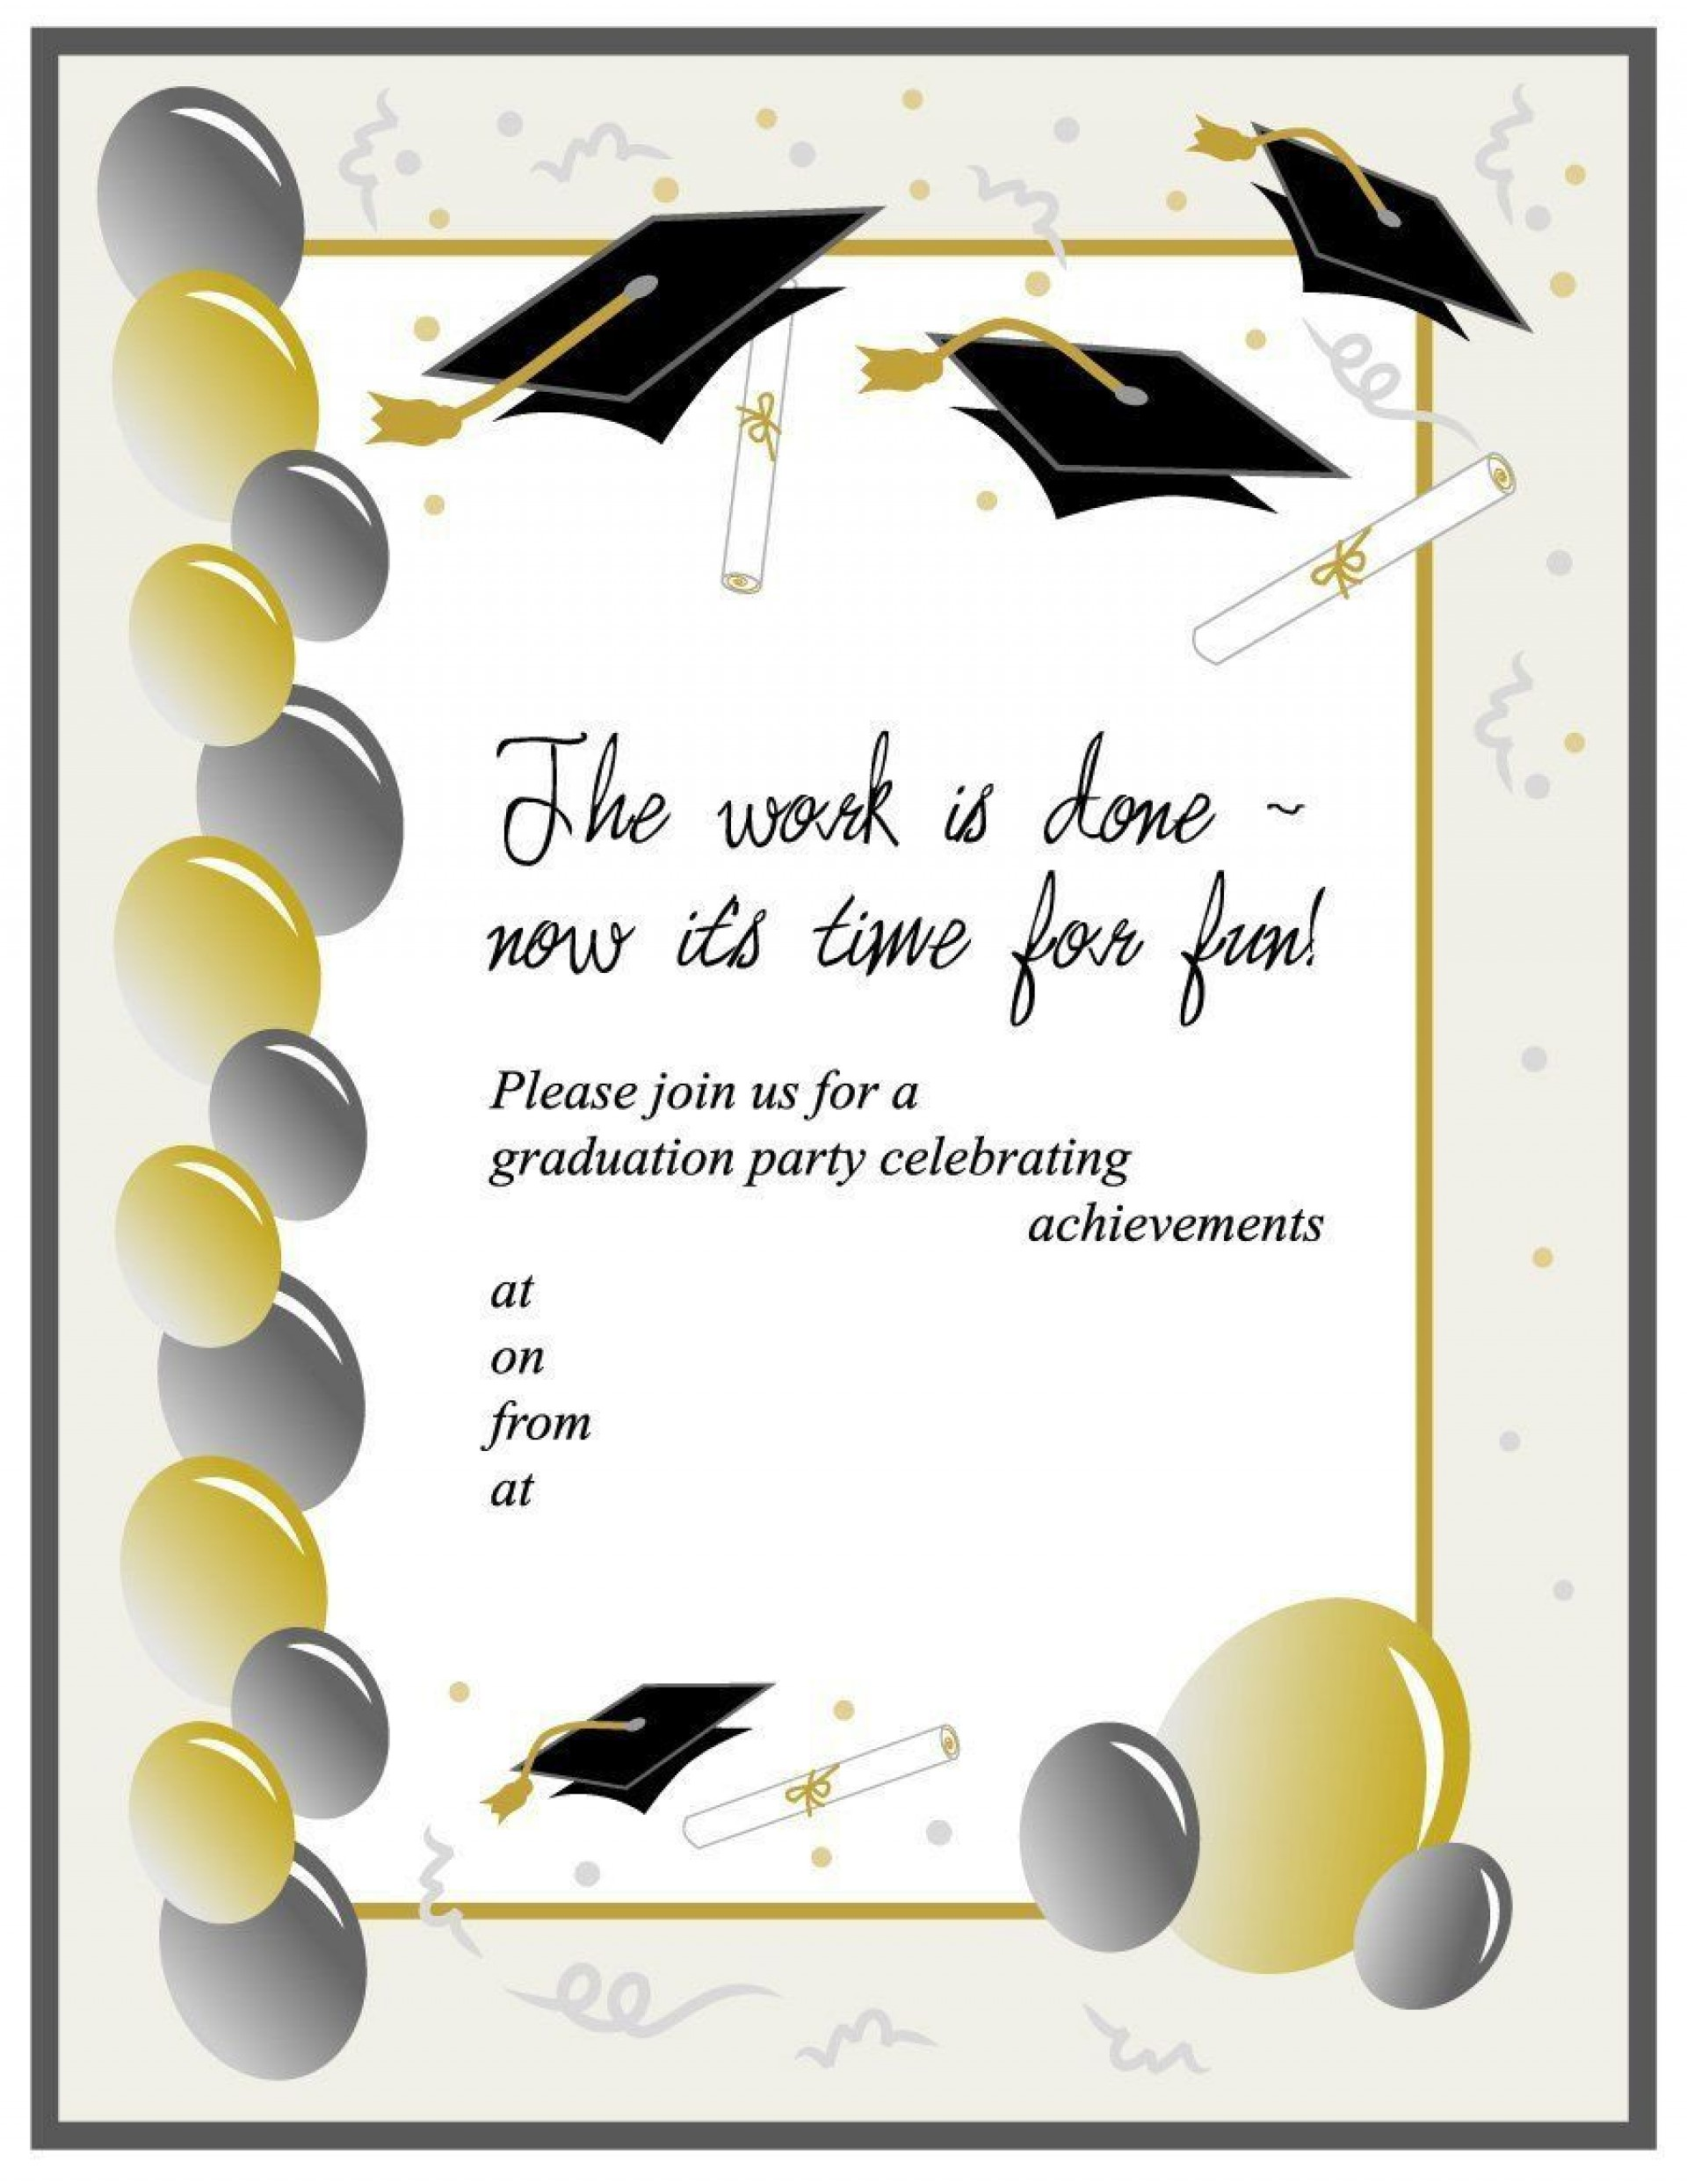 006 Staggering Microsoft Word Graduation Invitation Template Example  Party1920